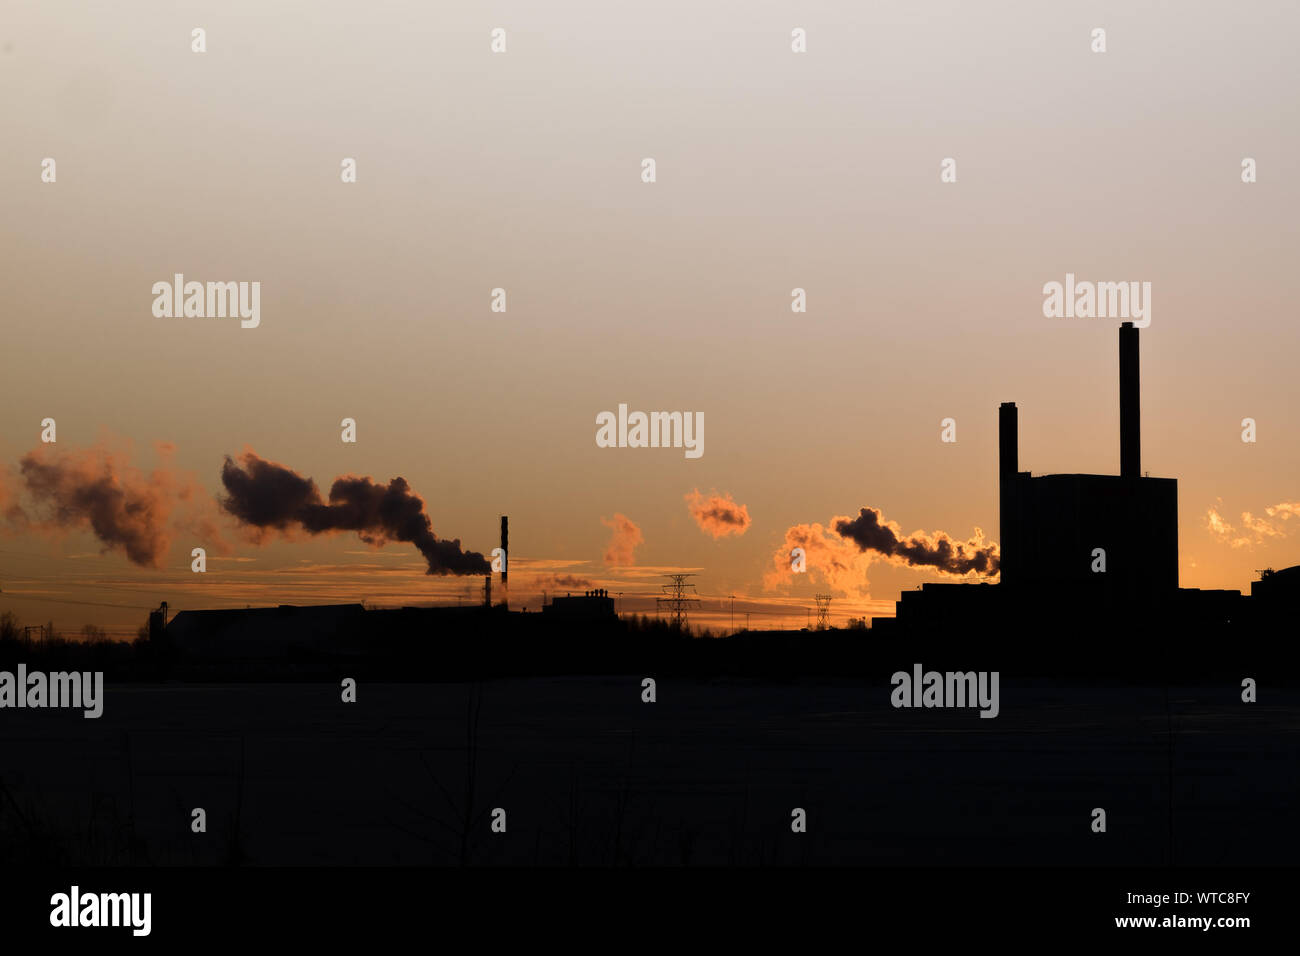 Smoke Emitting From Silhouette Chimneys Against Sky During Sunset Stock Photo